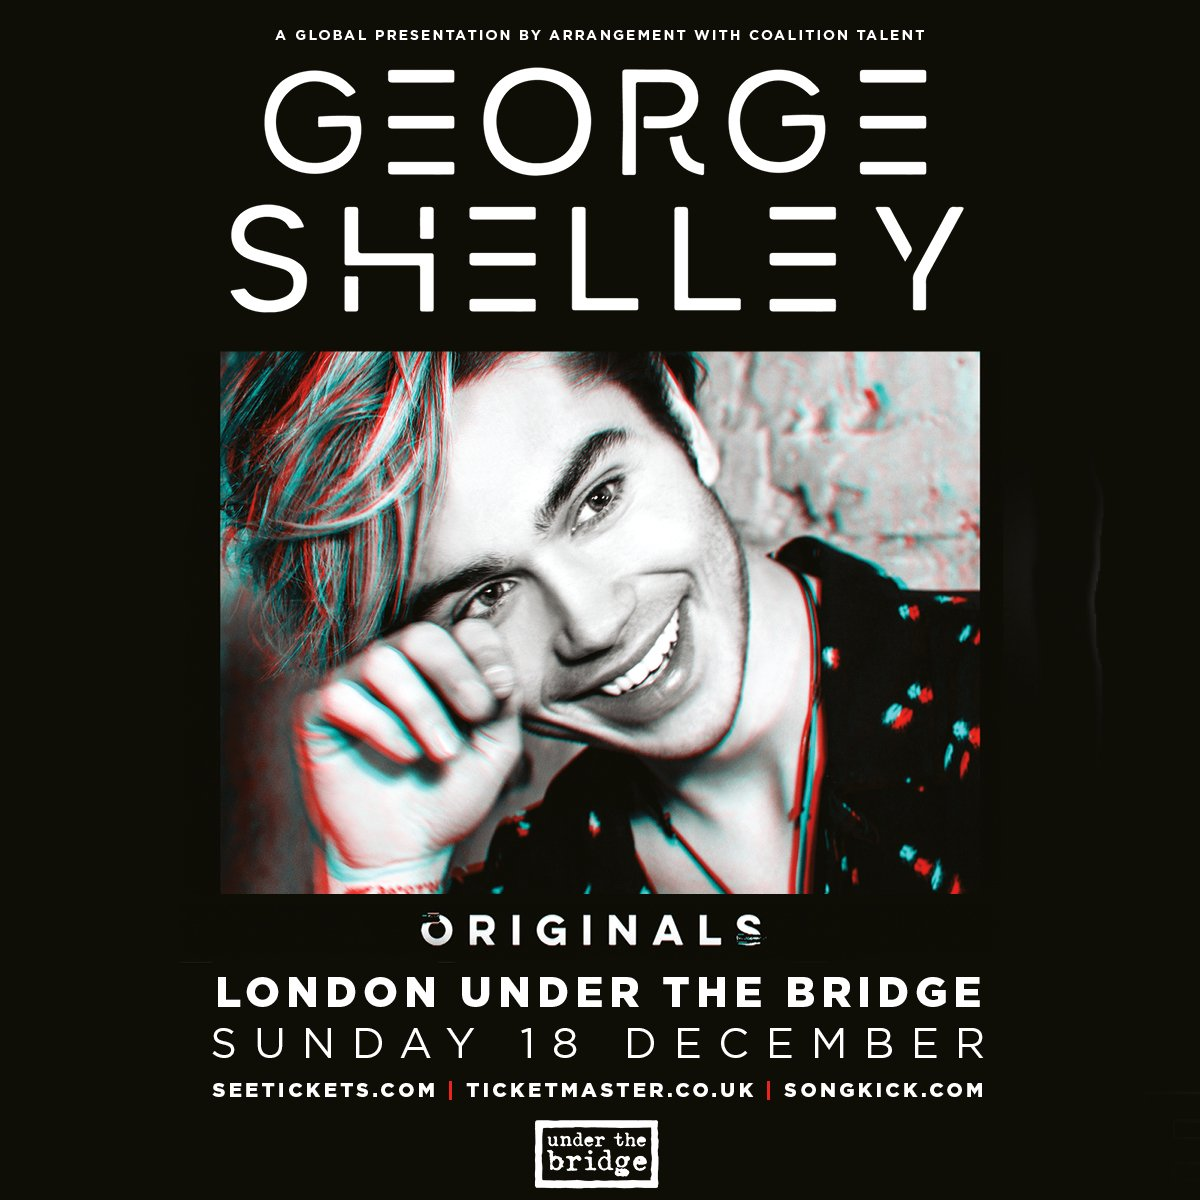 JUST ANNOUNCED @higeorgeshelley  Sunday 18th December  Tix on sale MON 14 NOV 9am -->> https://t.co/r79OdFm4gr https://t.co/f1w3rFEg75